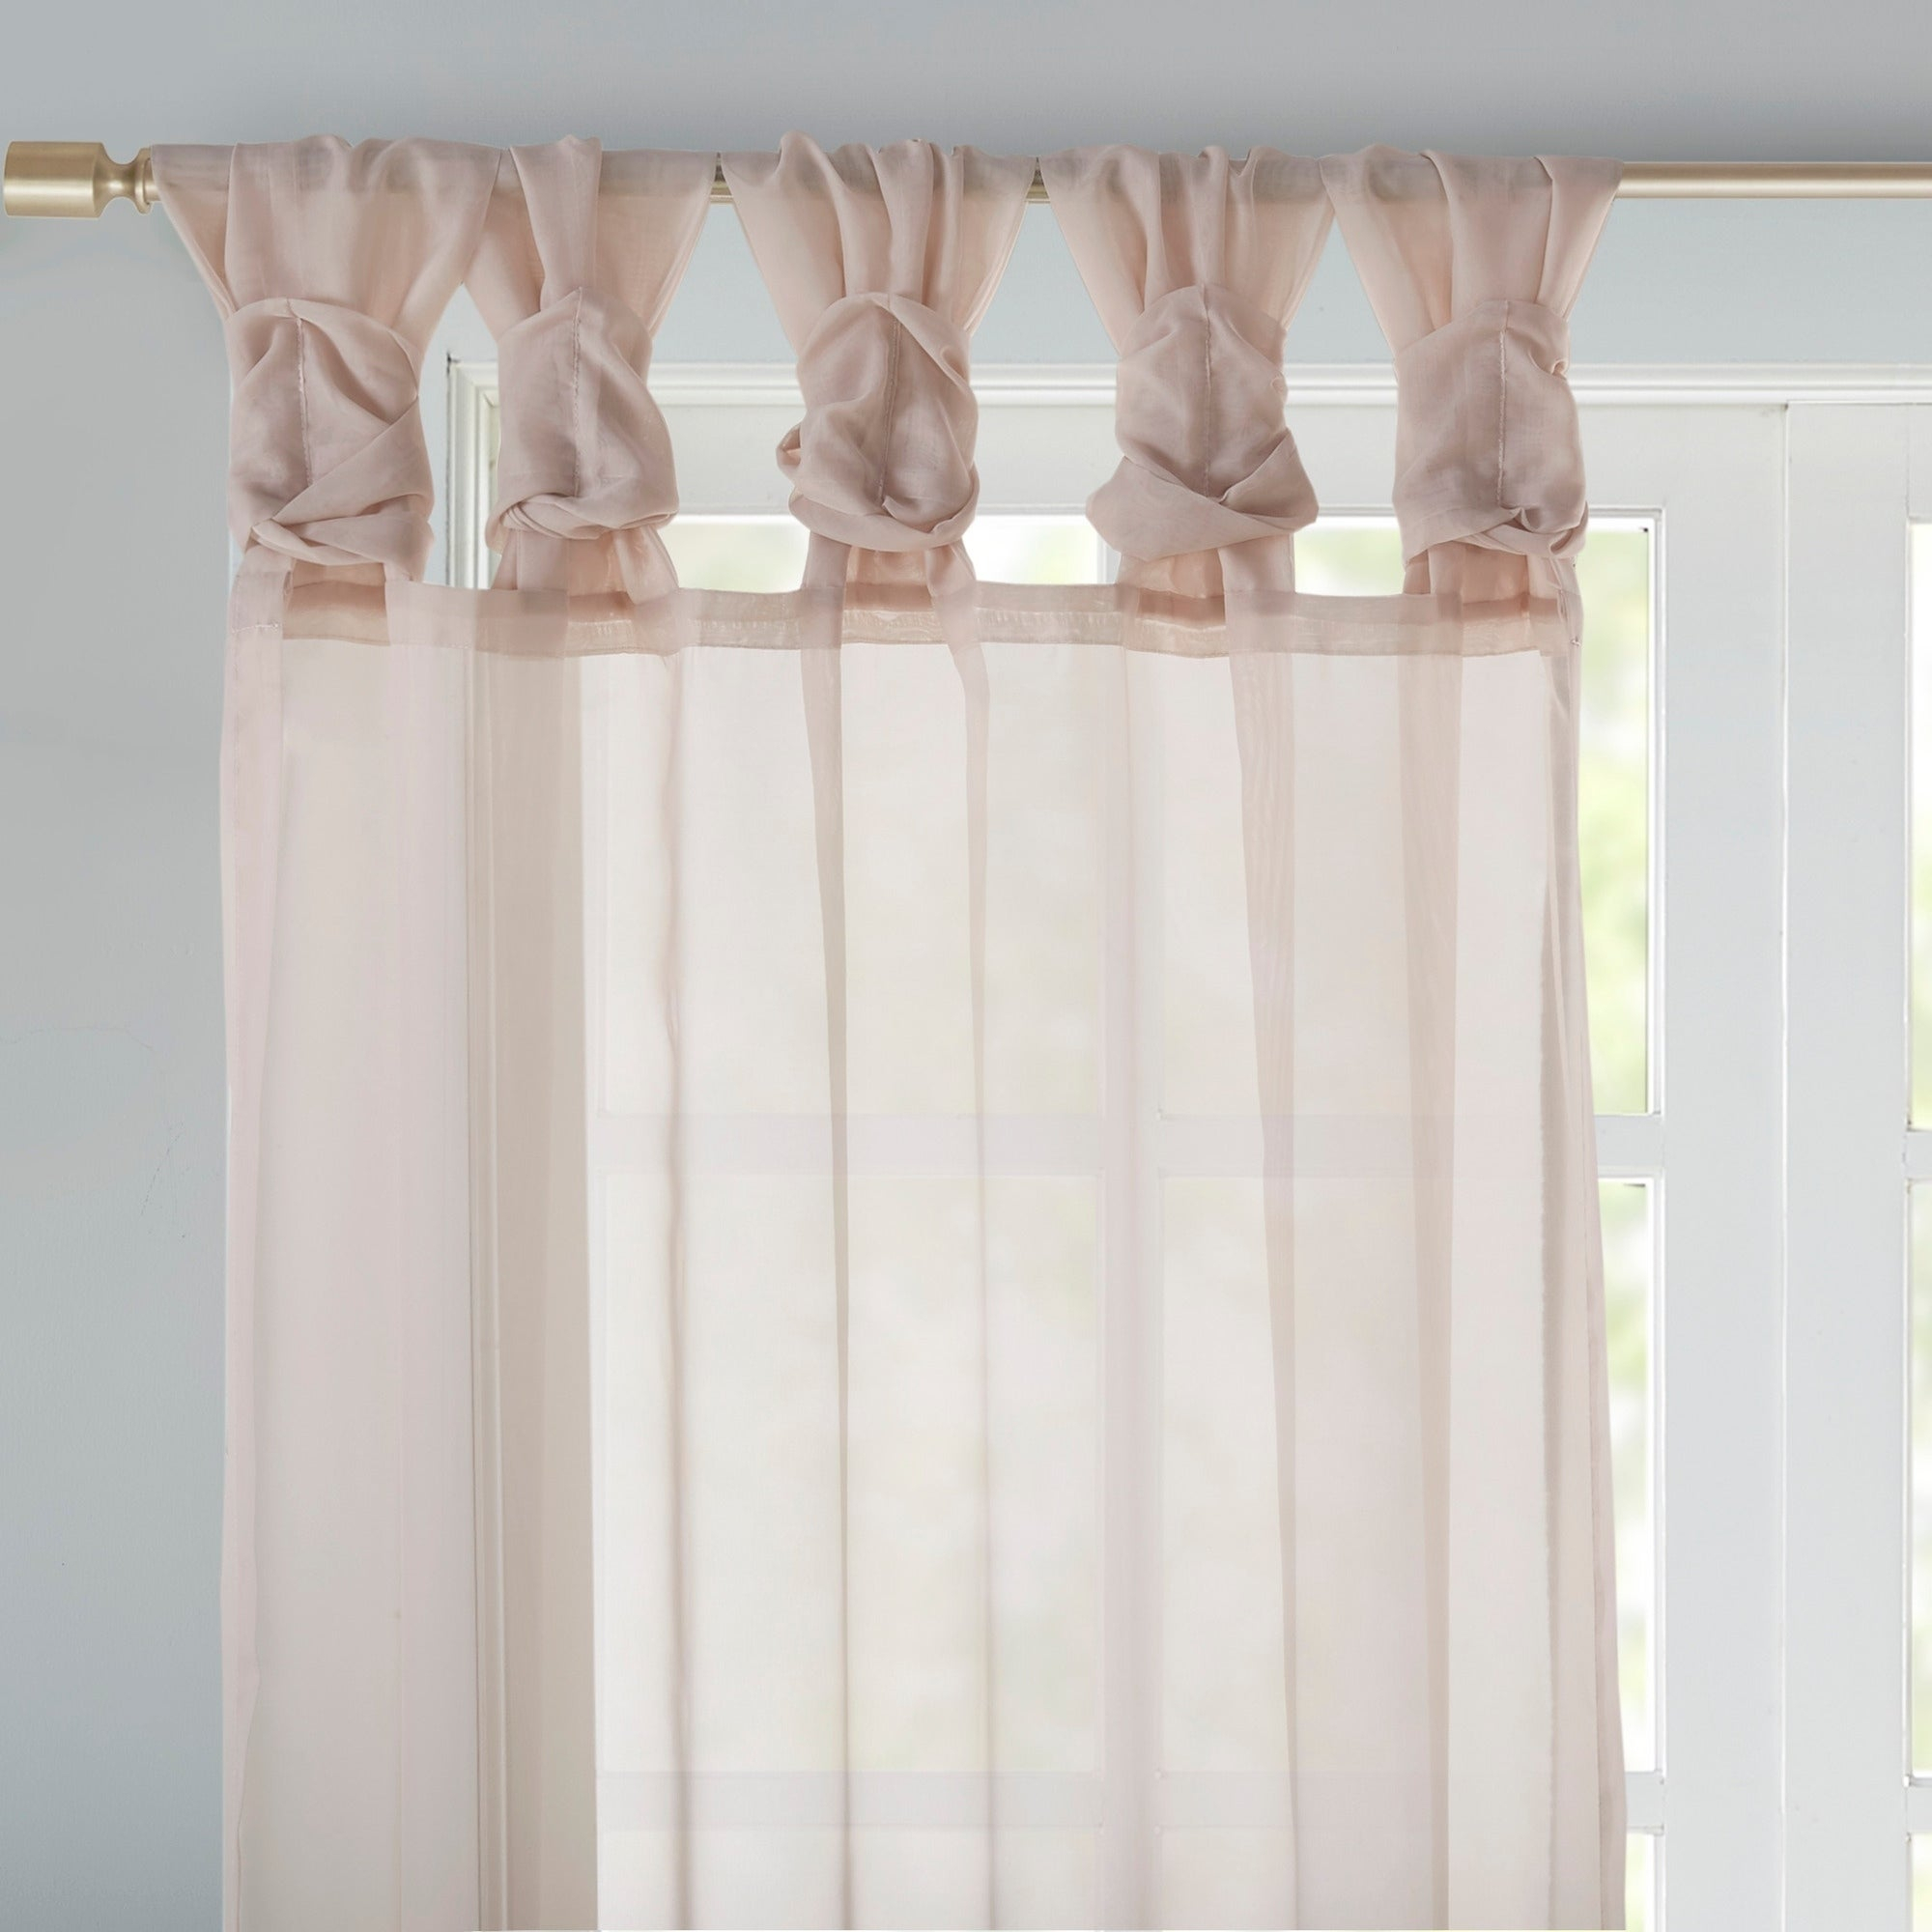 Madison Park Elowen White Twist Tab Voile Sheer Curtain Panel Pair Regarding Elowen White Twist Tab Voile Sheer Curtain Panel Pairs (View 6 of 20)